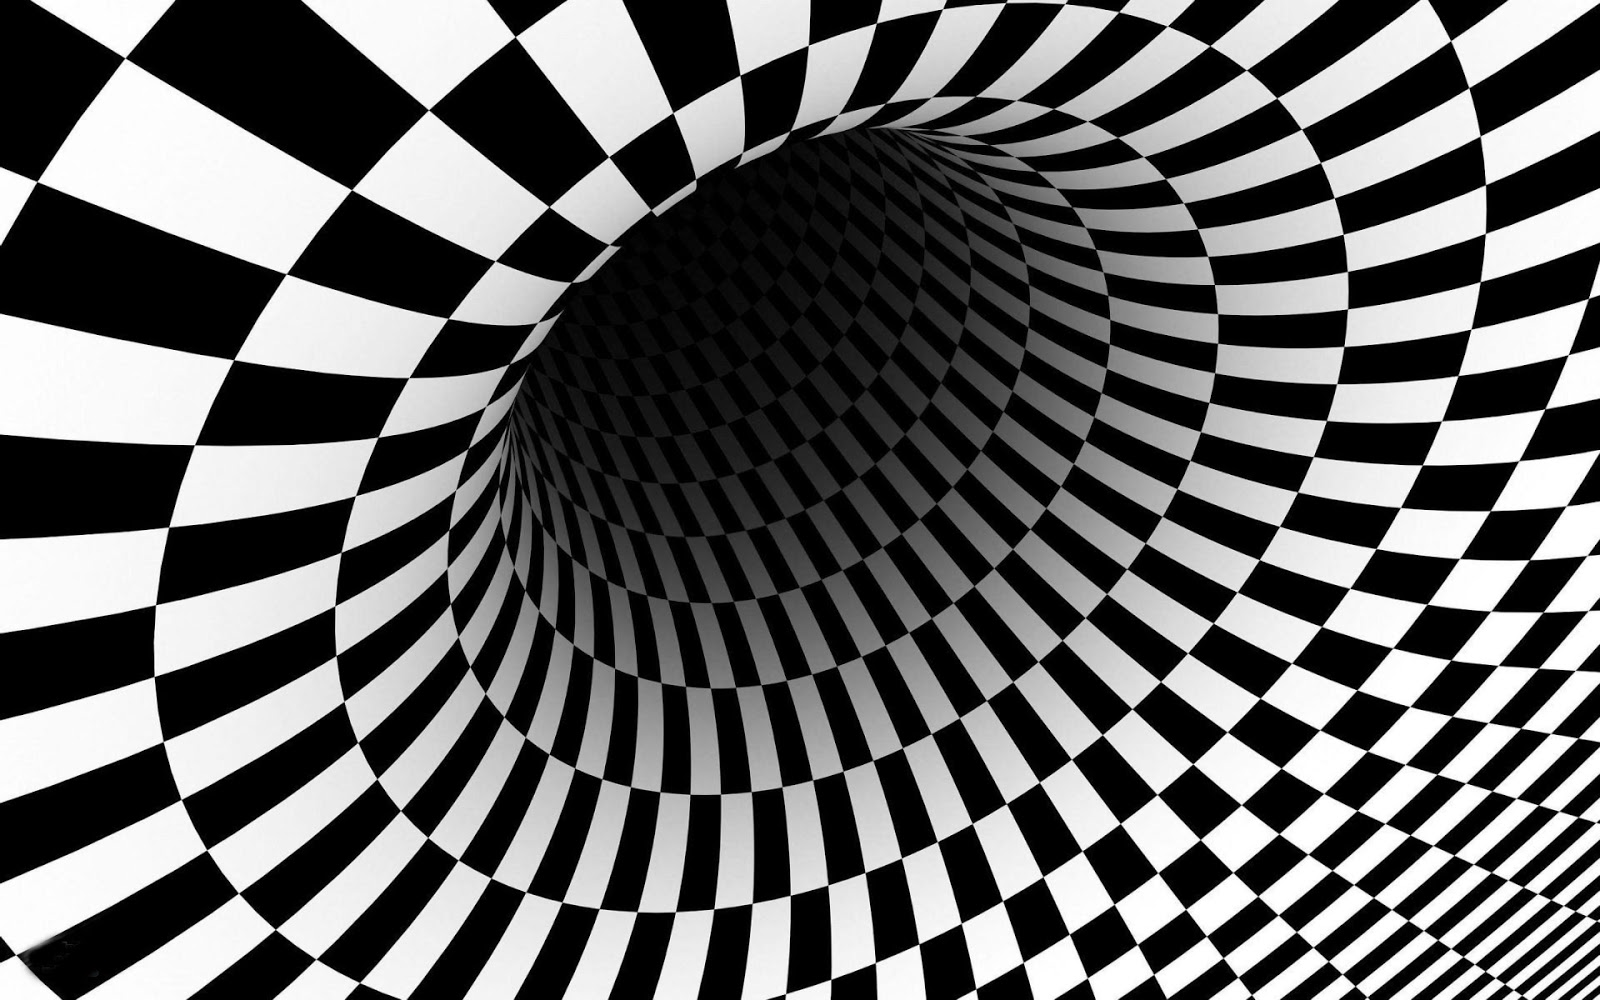 3d Magic Eye Moving Wallpapers Best Mind Teasers Wallpapers Wallpaper Hd